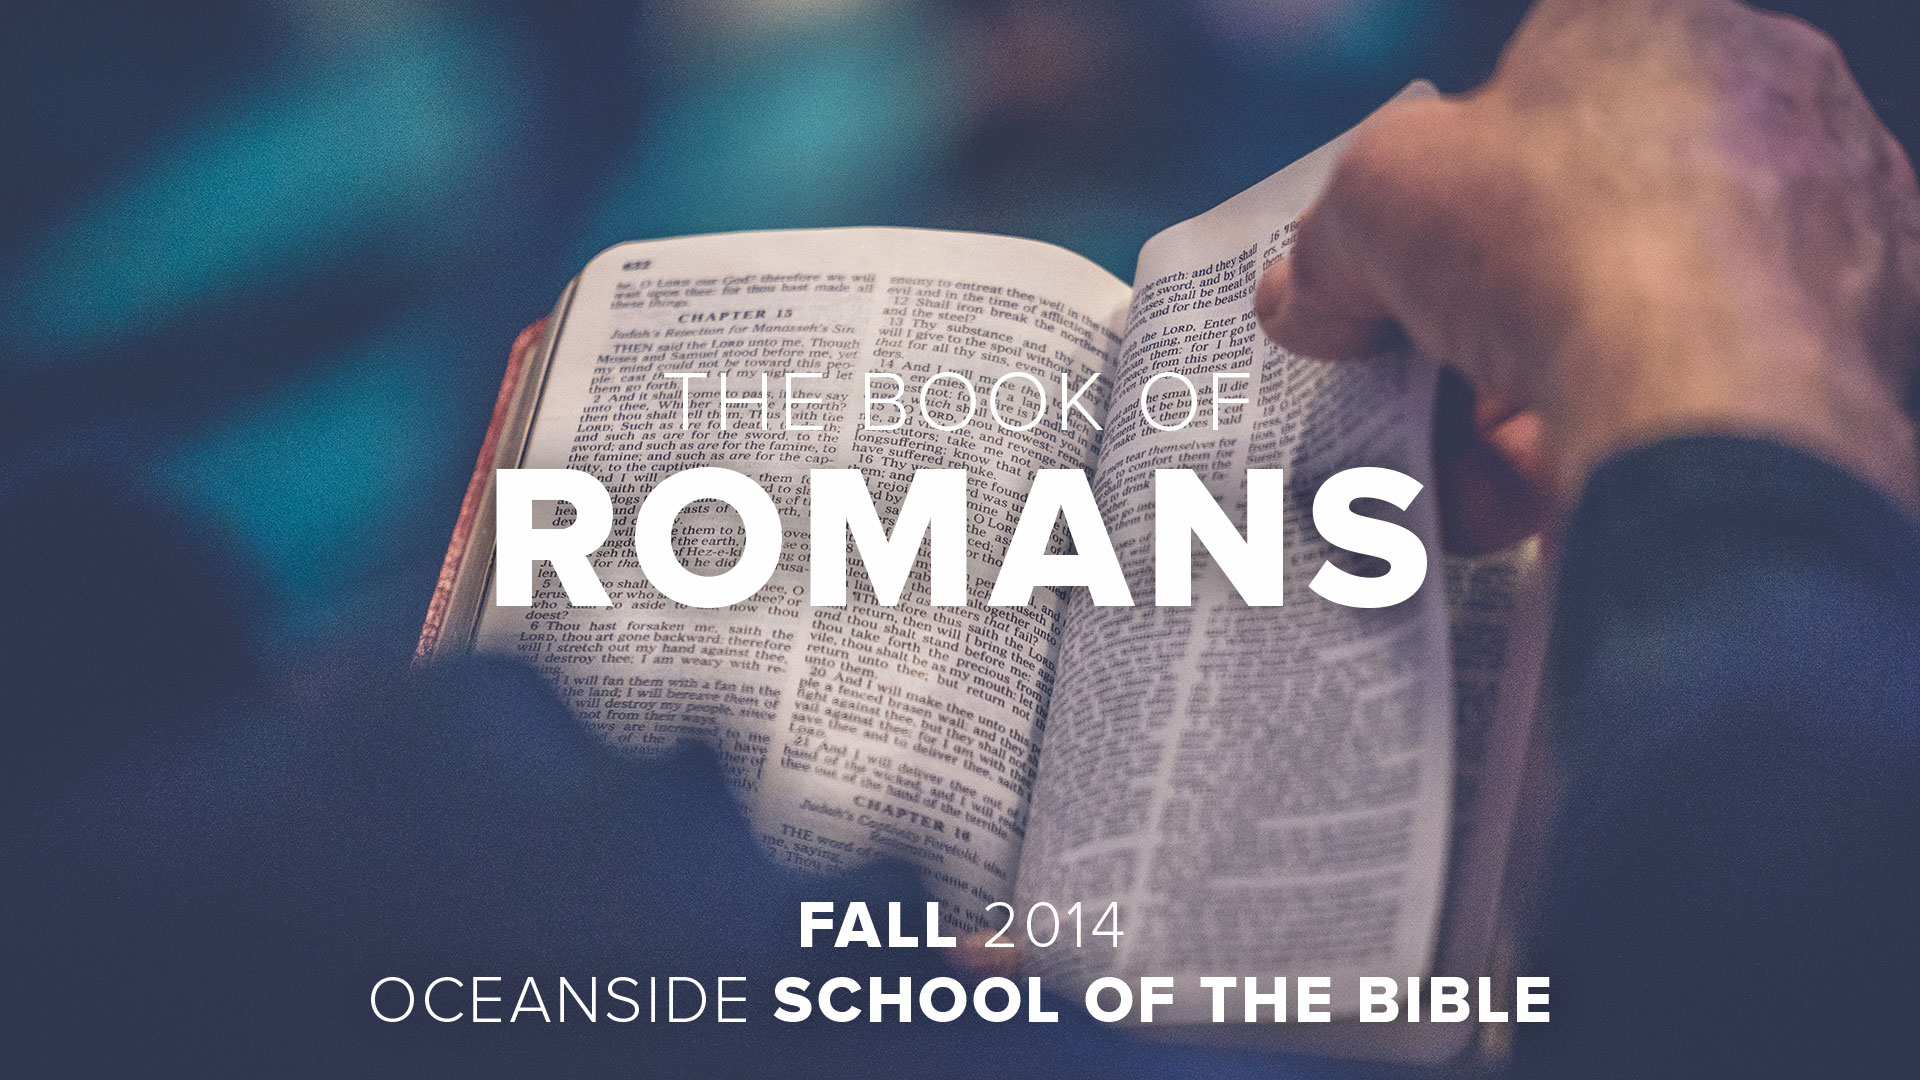 Session 3 - Romans